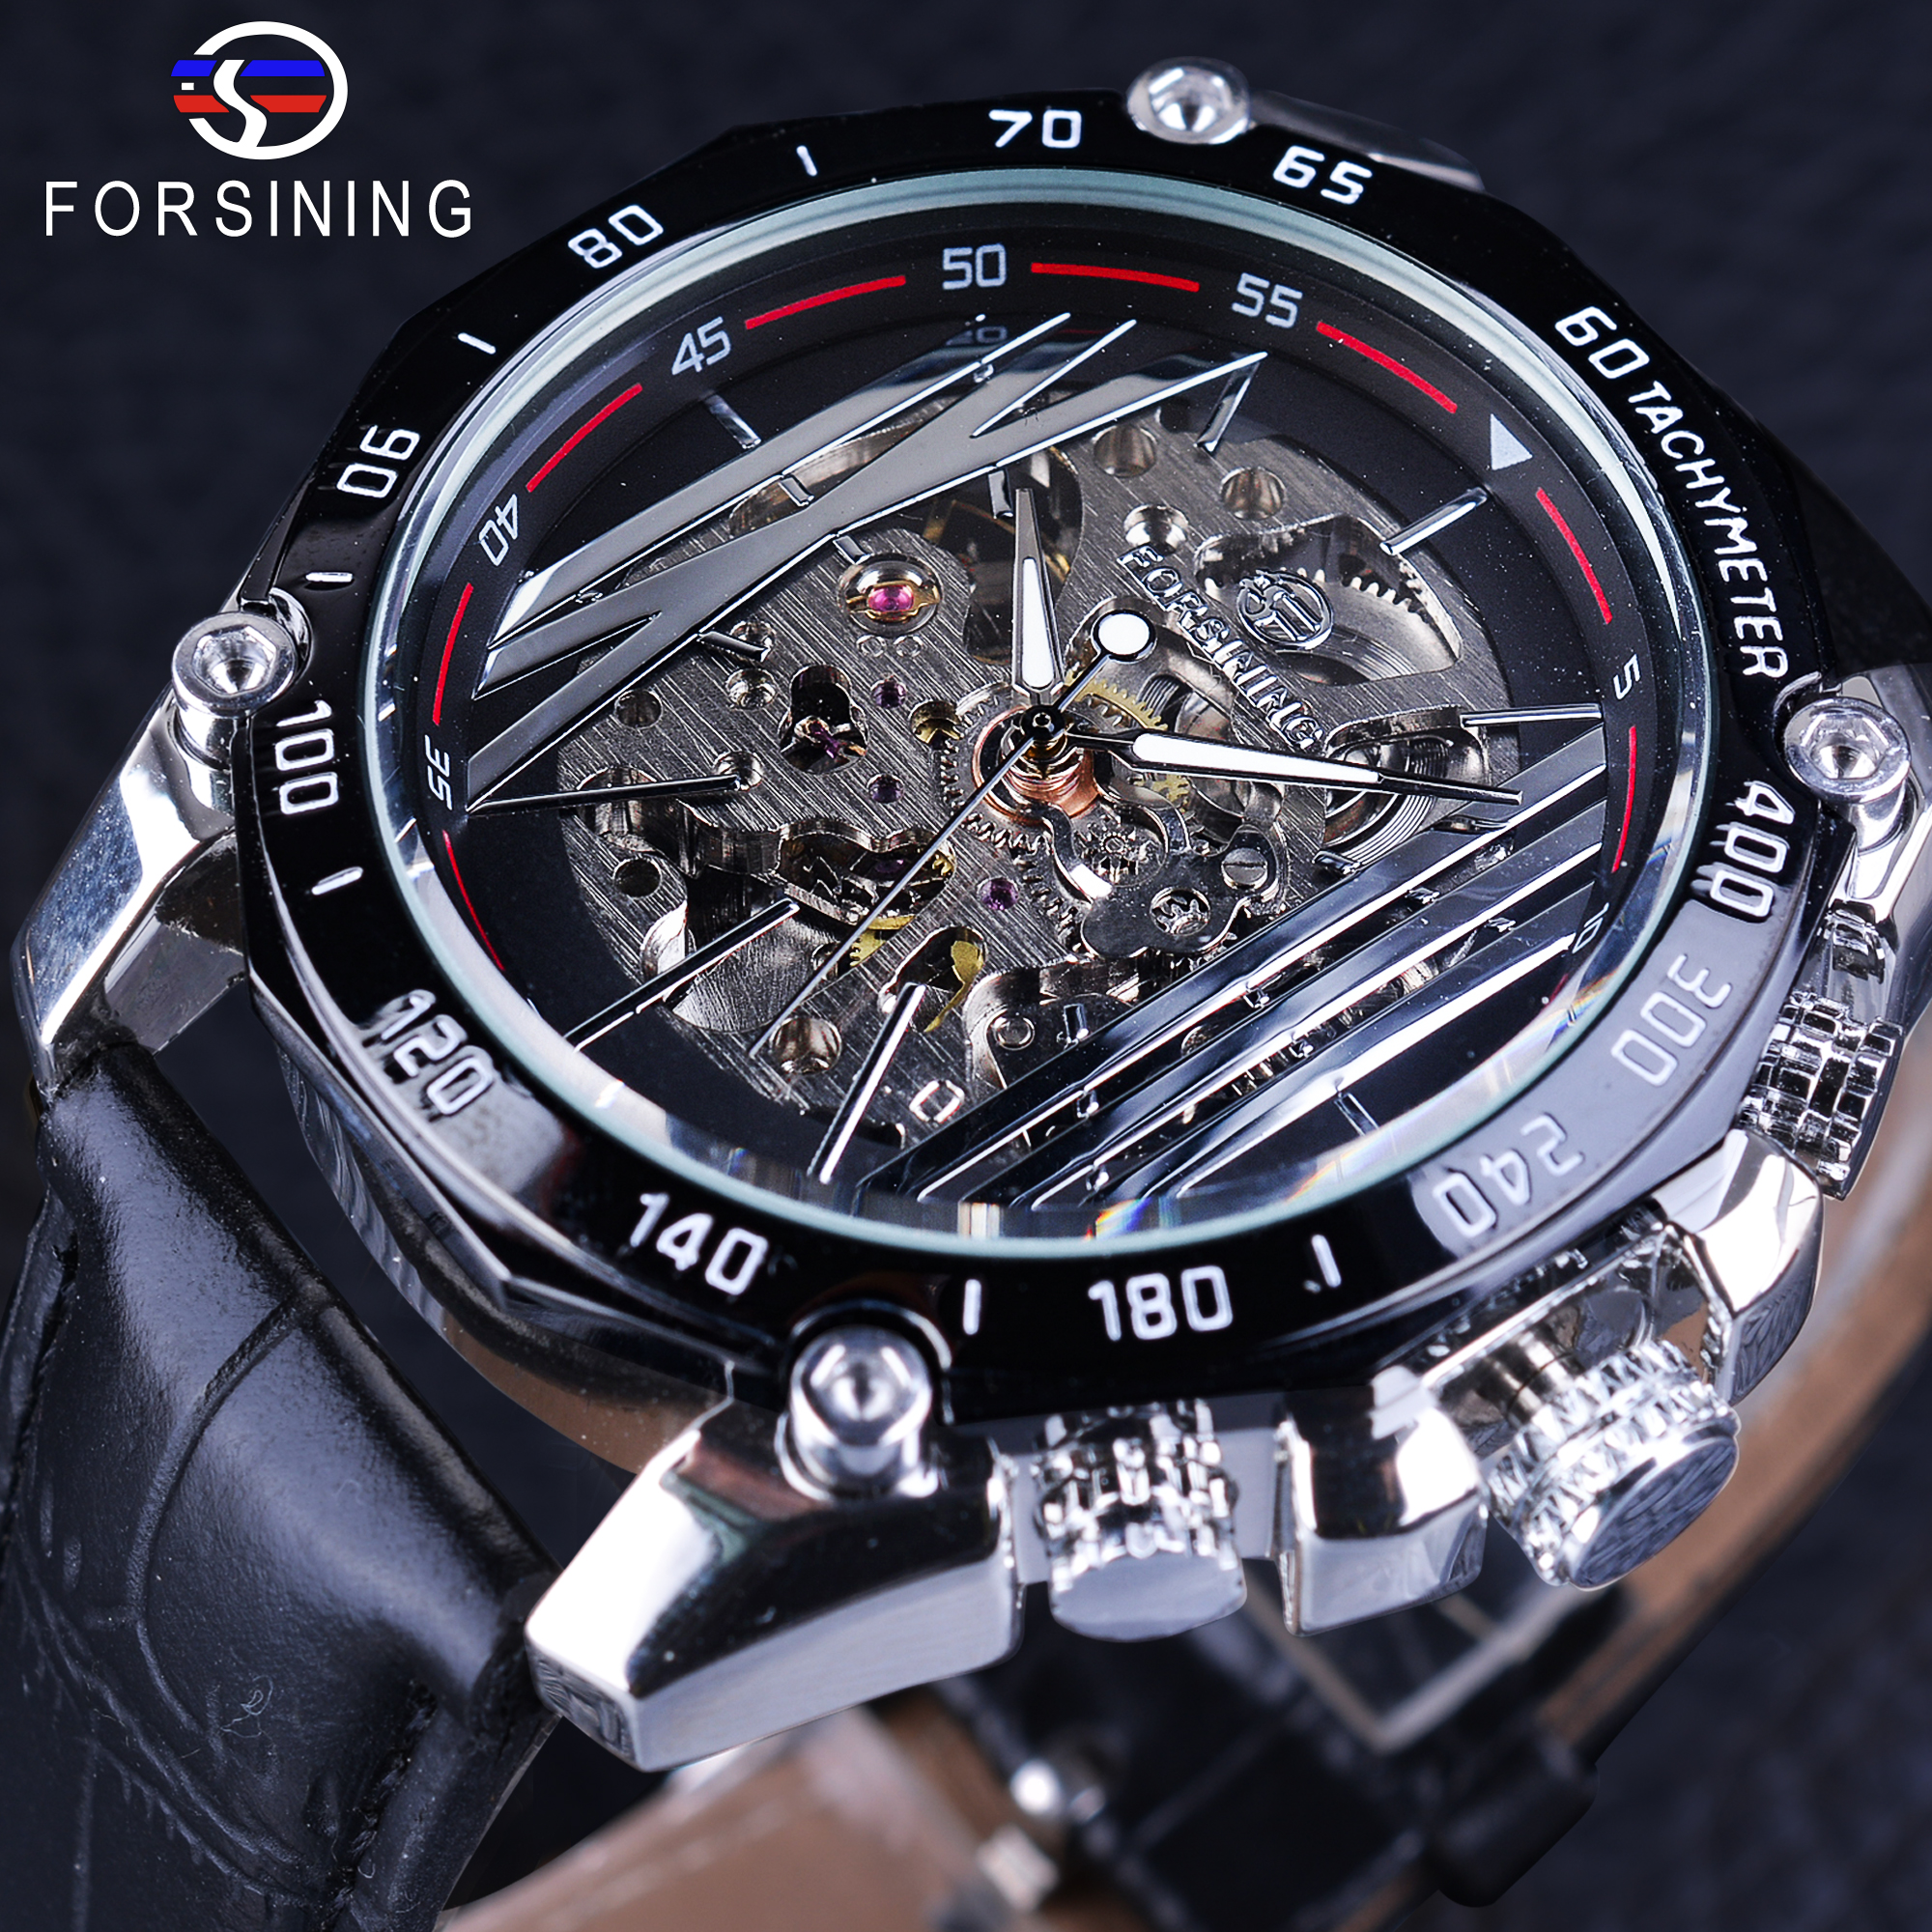 Forsining Mechanical Steampunk Wristwatch Men Military Sport Watch Silver Transparent Skeleton Automatic Creative Watch Clock forsining golden stainless steel sport watch steampunk men watch luminous openwork mechanical watches folding clasp with safety